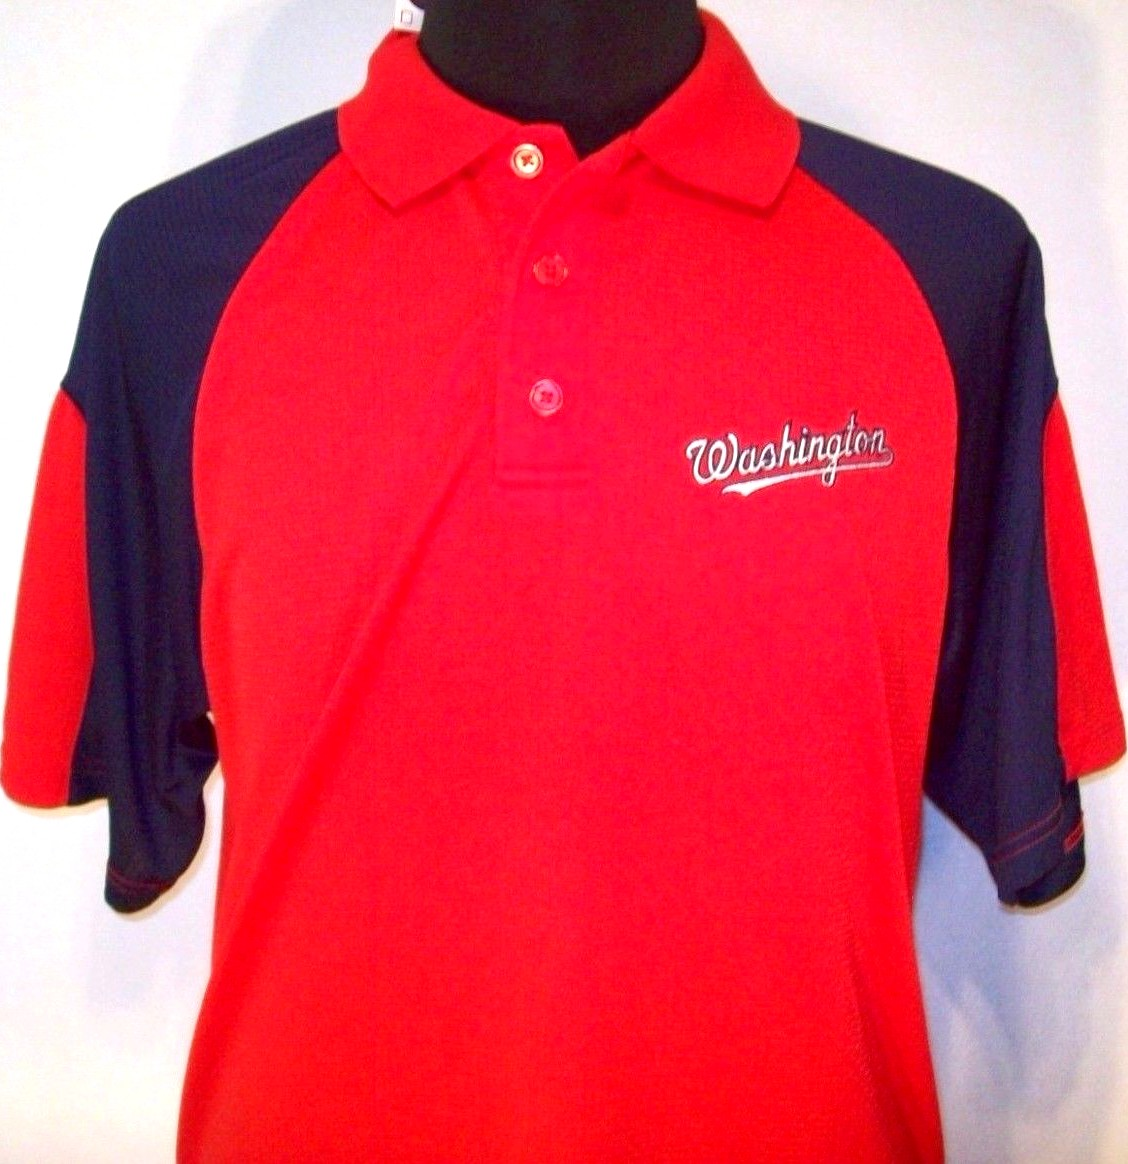 Washington Nationals Blue And Red Golf Or Polo Shirt New